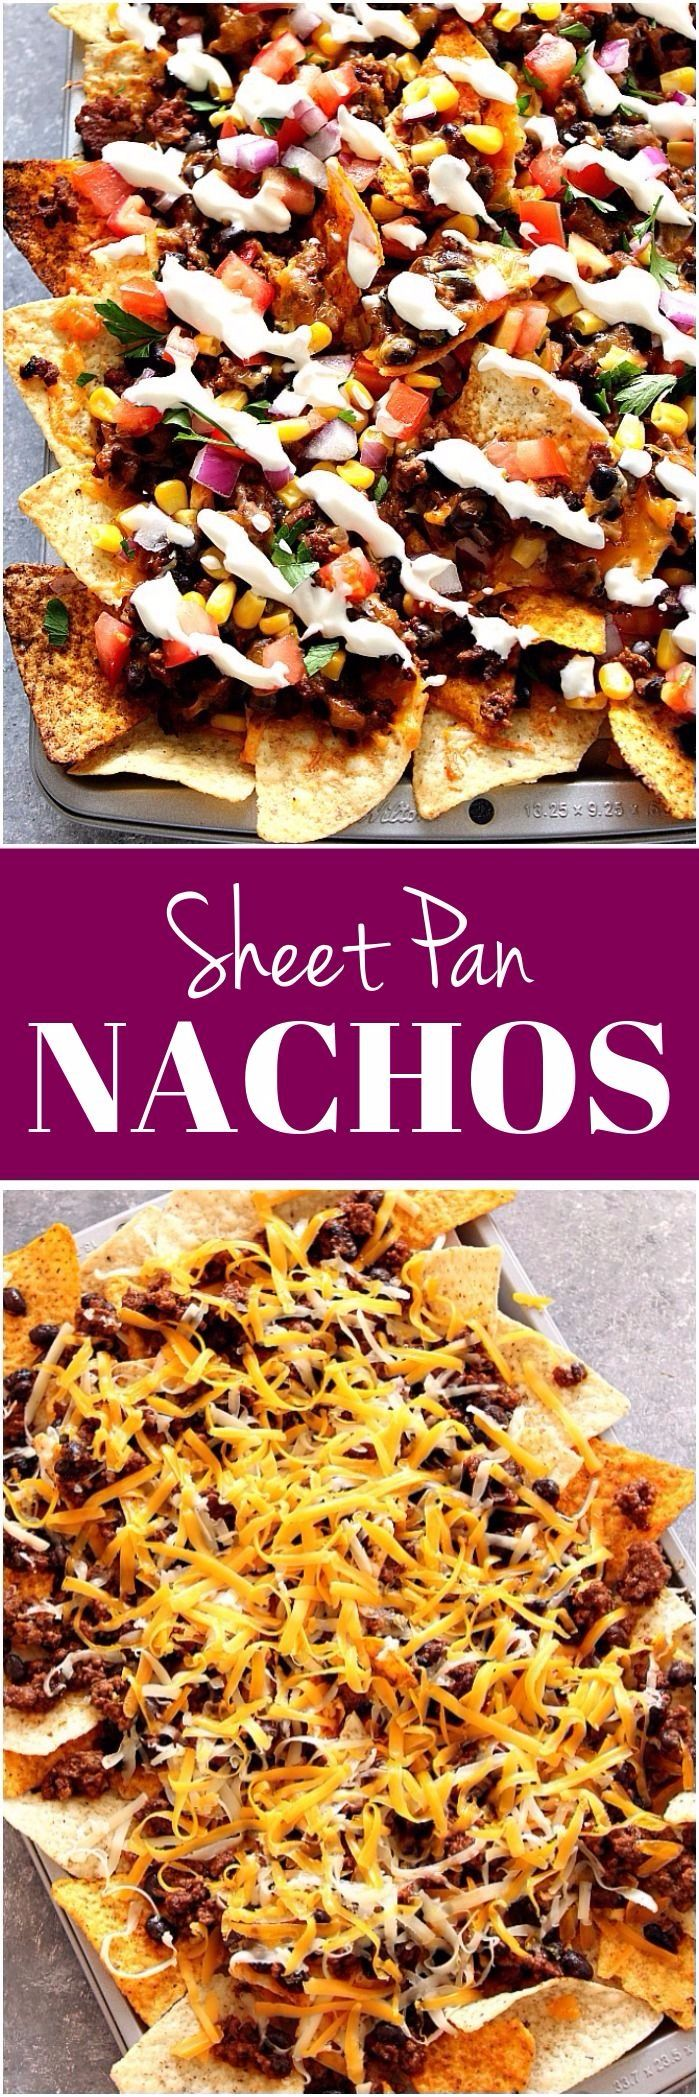 Sheet Pan Nachos Recipe - loaded nachos with all of your favorite toppings and baked in the oven. www.crunchycreamysweet.com